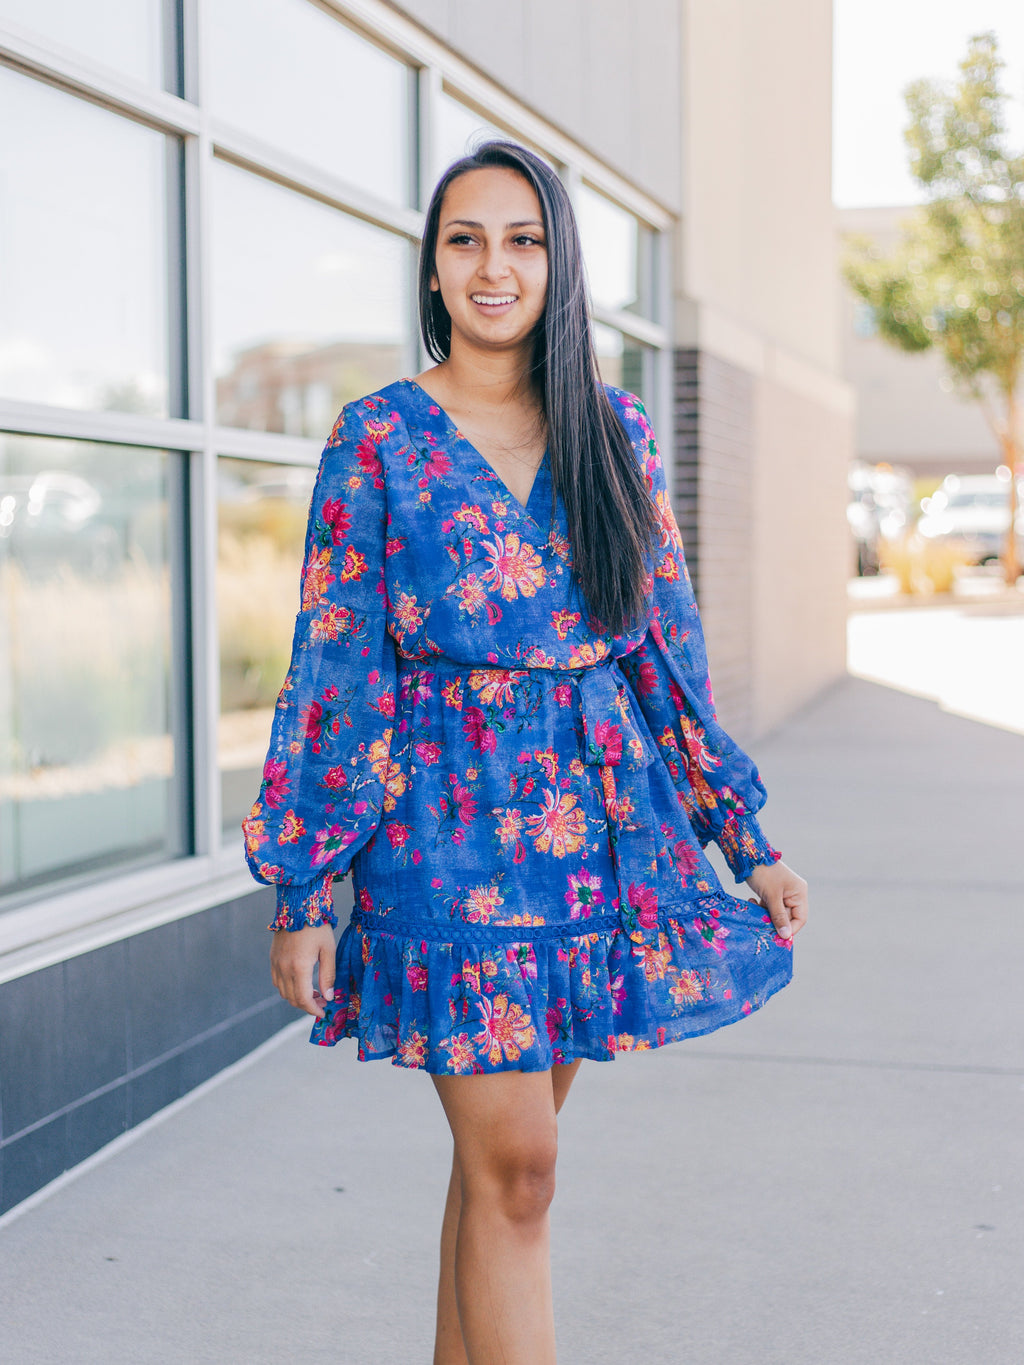 Majestic Floral Dress in Royal Blue